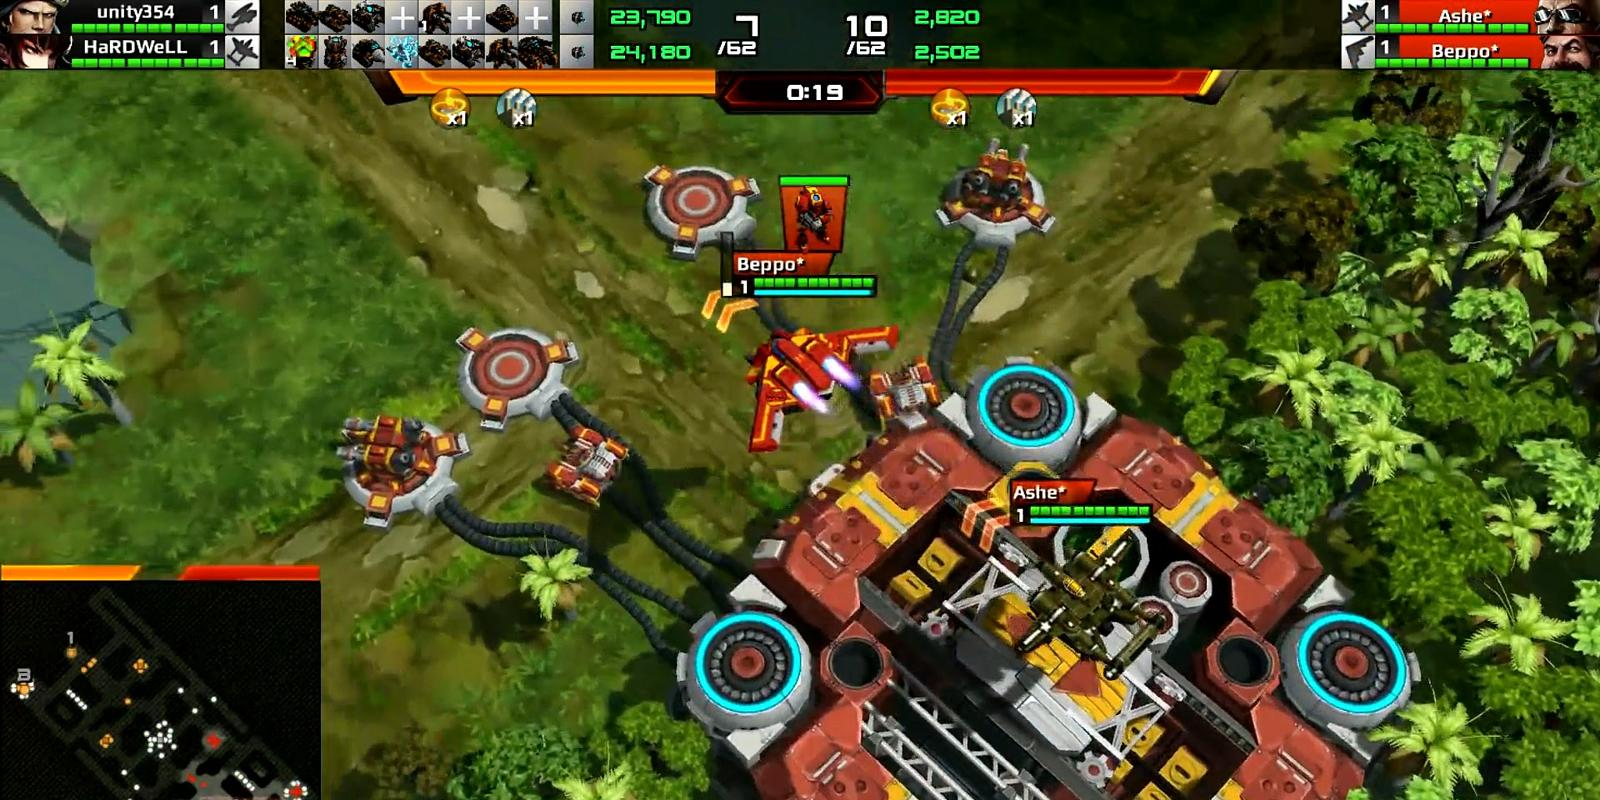 Strategy Games For Xbox 360 : Free to play strategy game airmech arena coming xbox